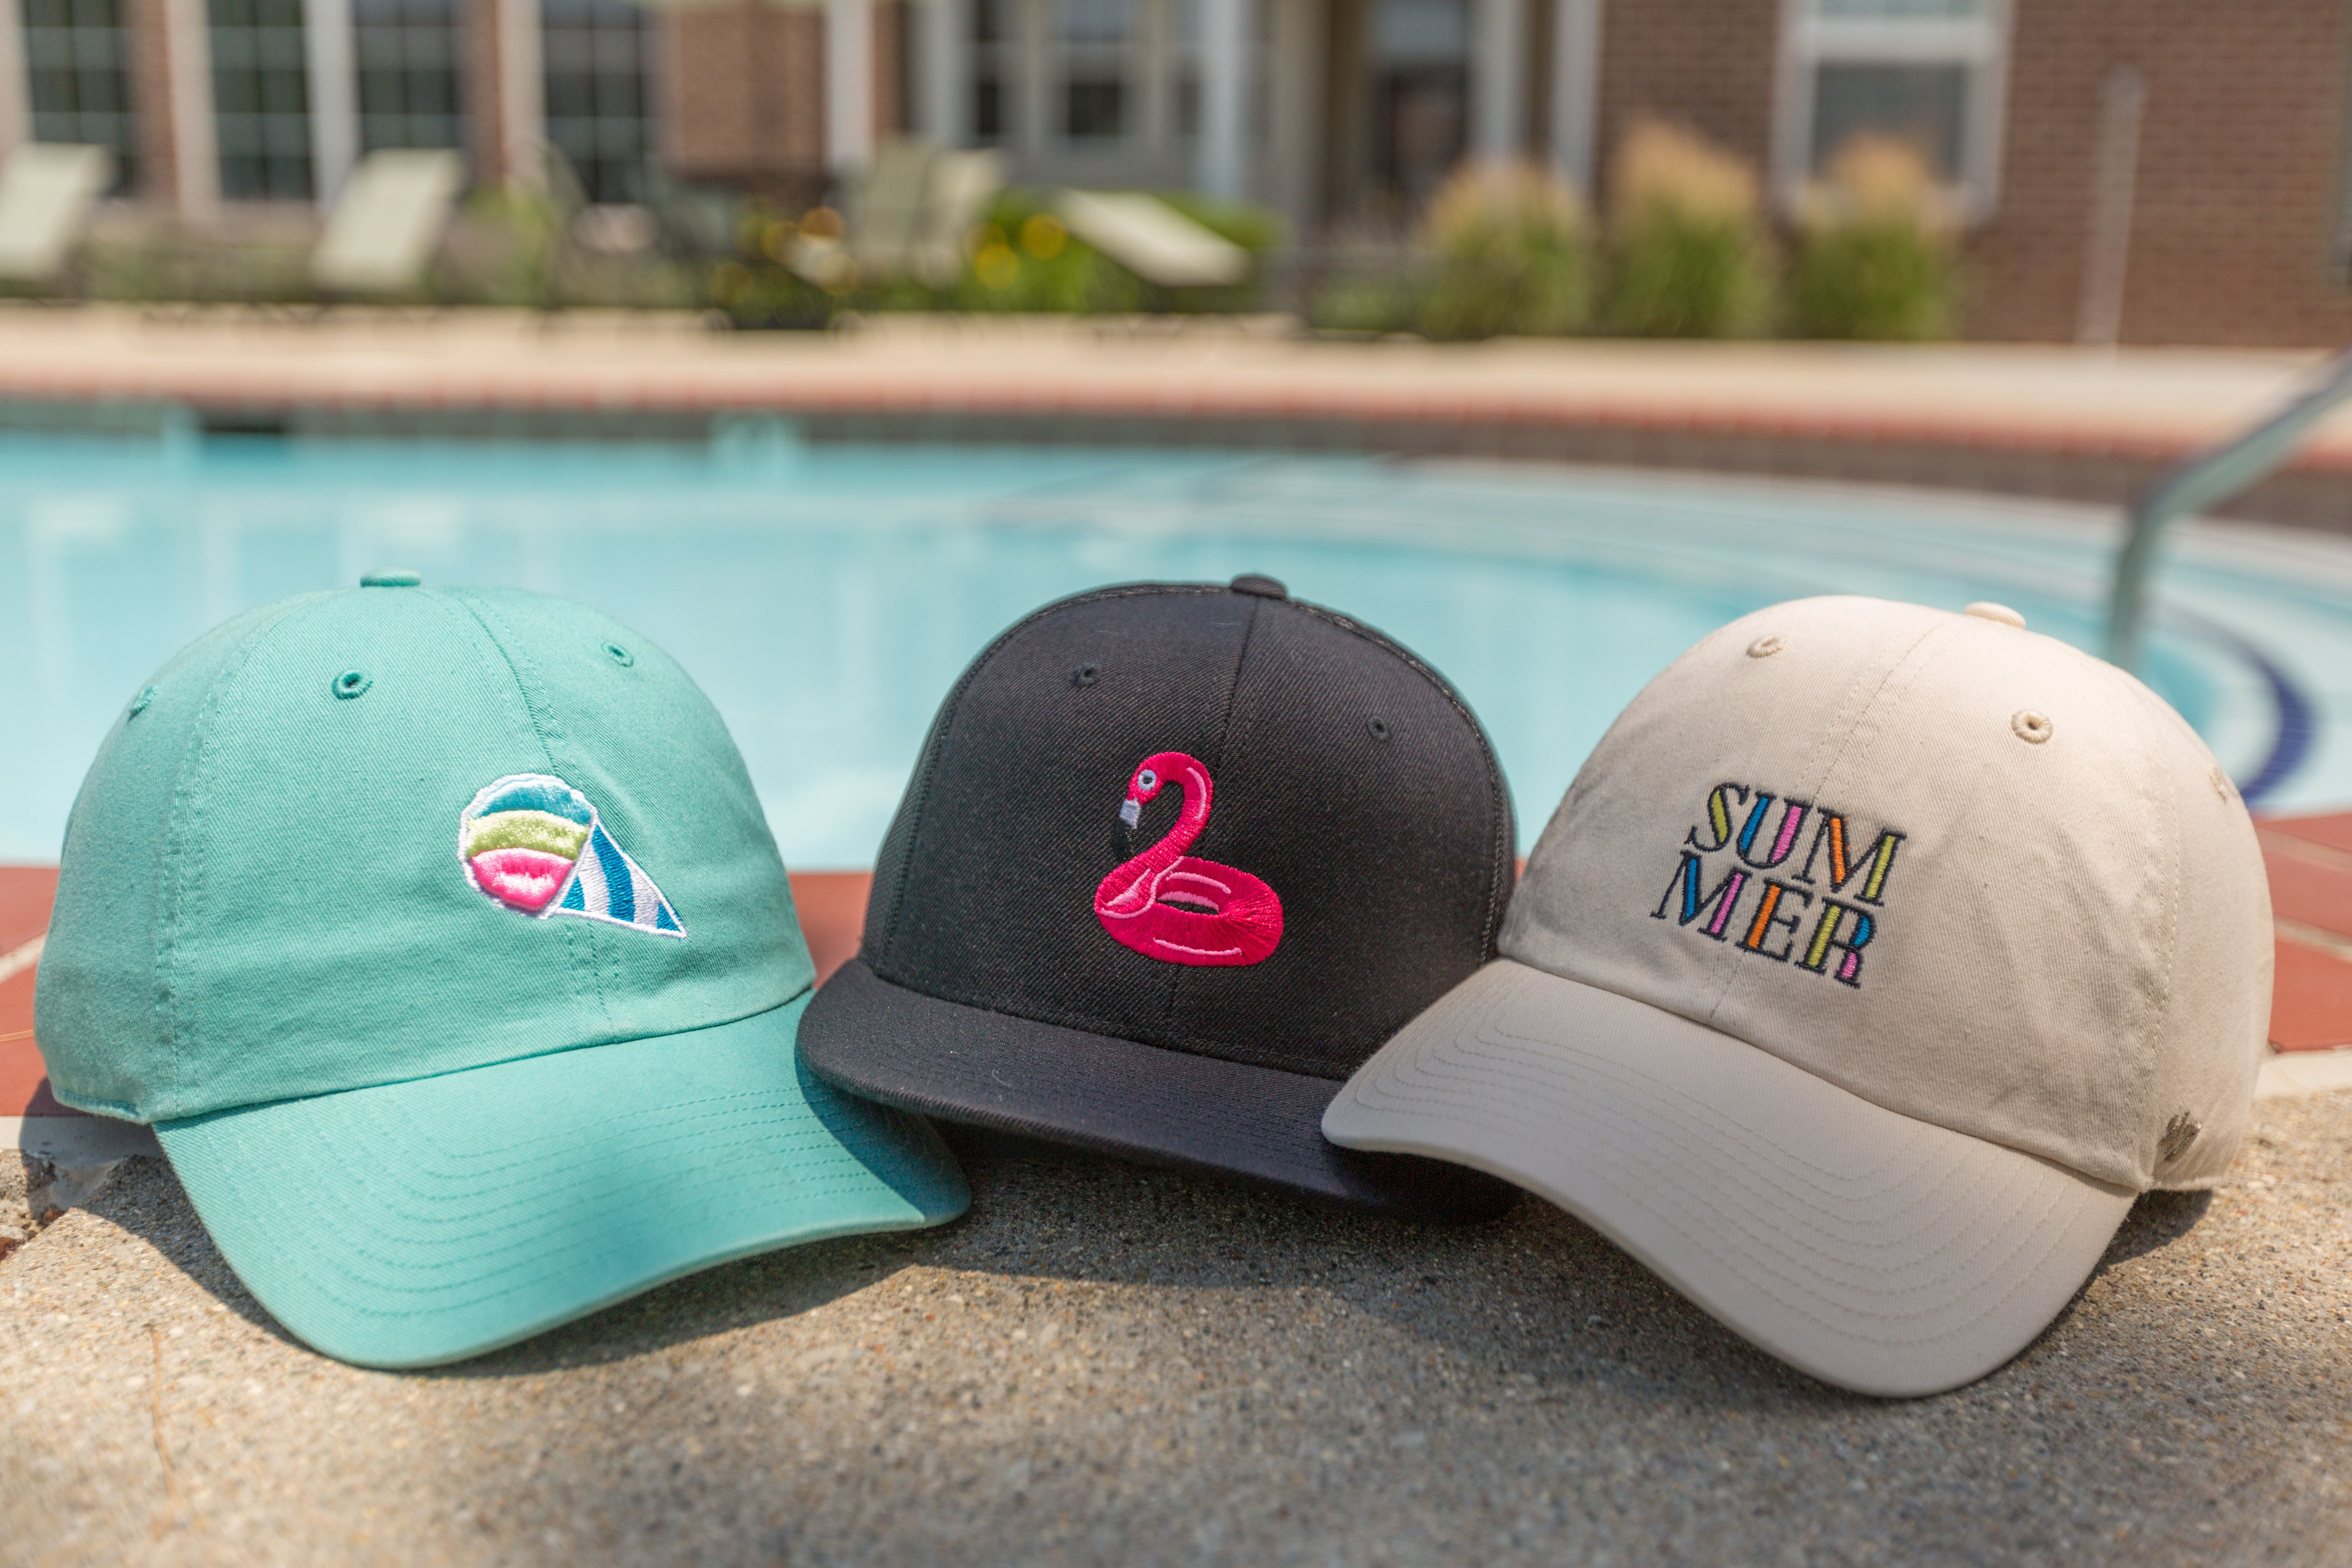 Find your new summer dad hat with a custom hat from Lids